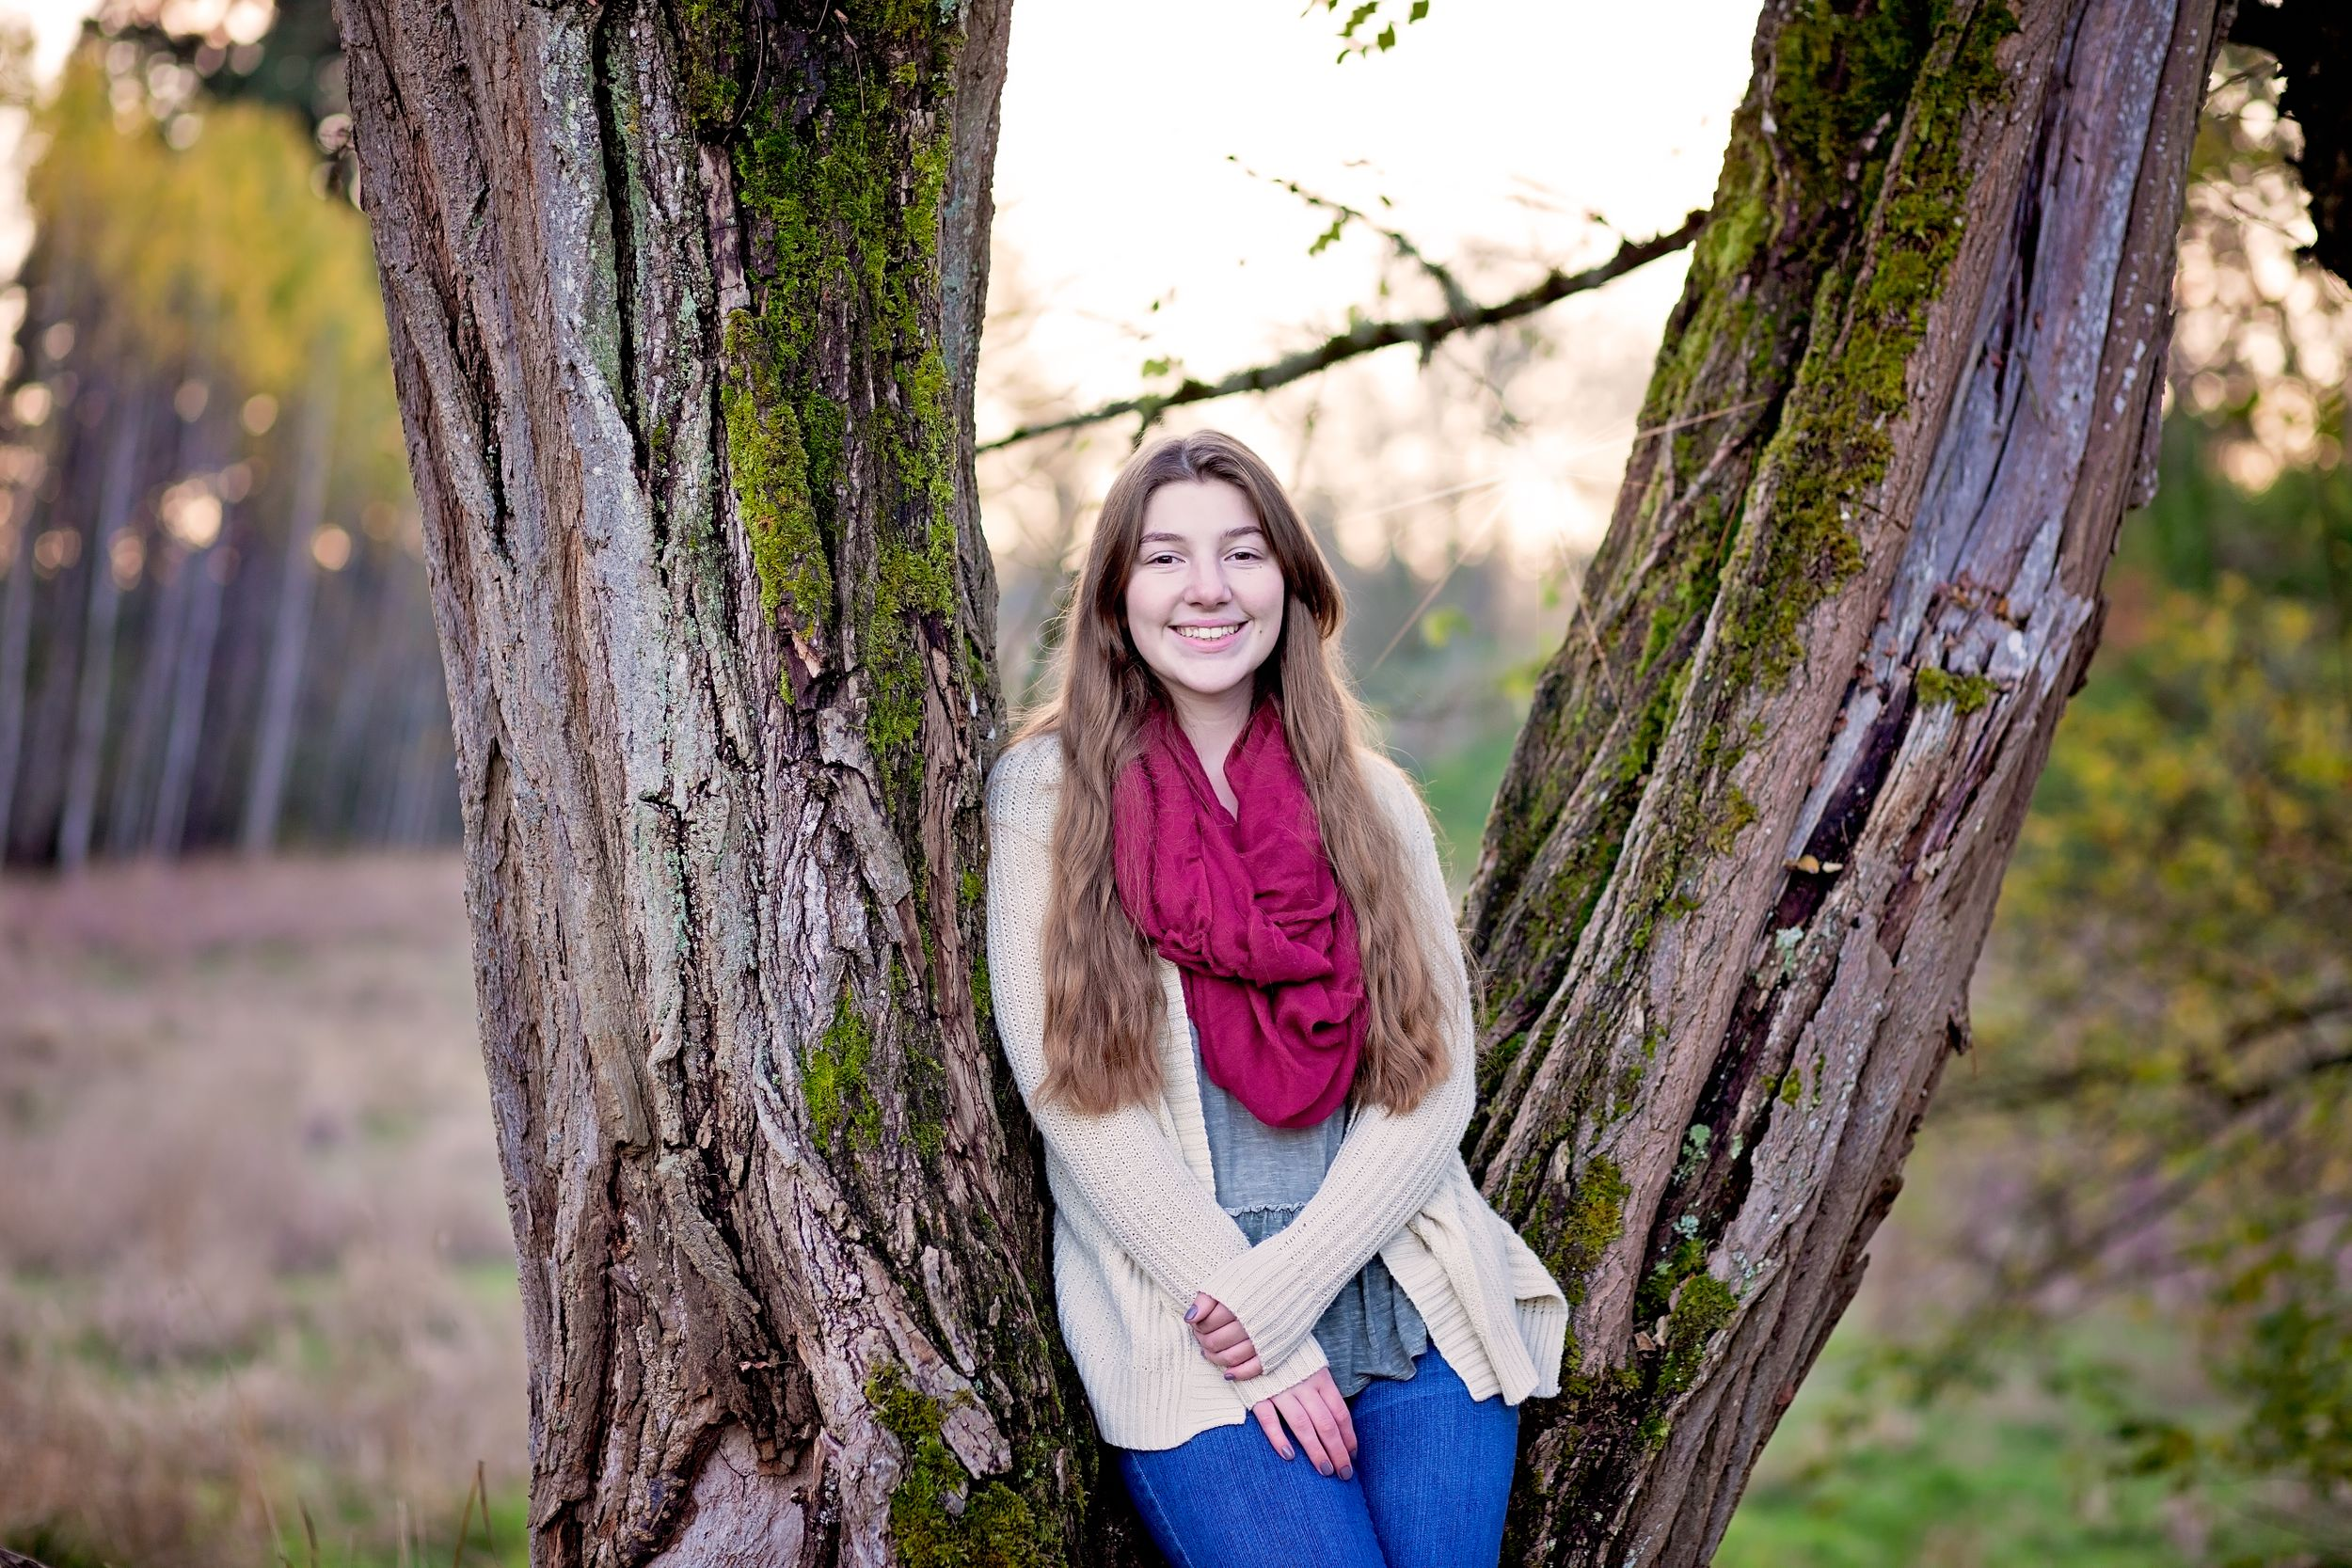 Senior session in steilacoom park at sunrise